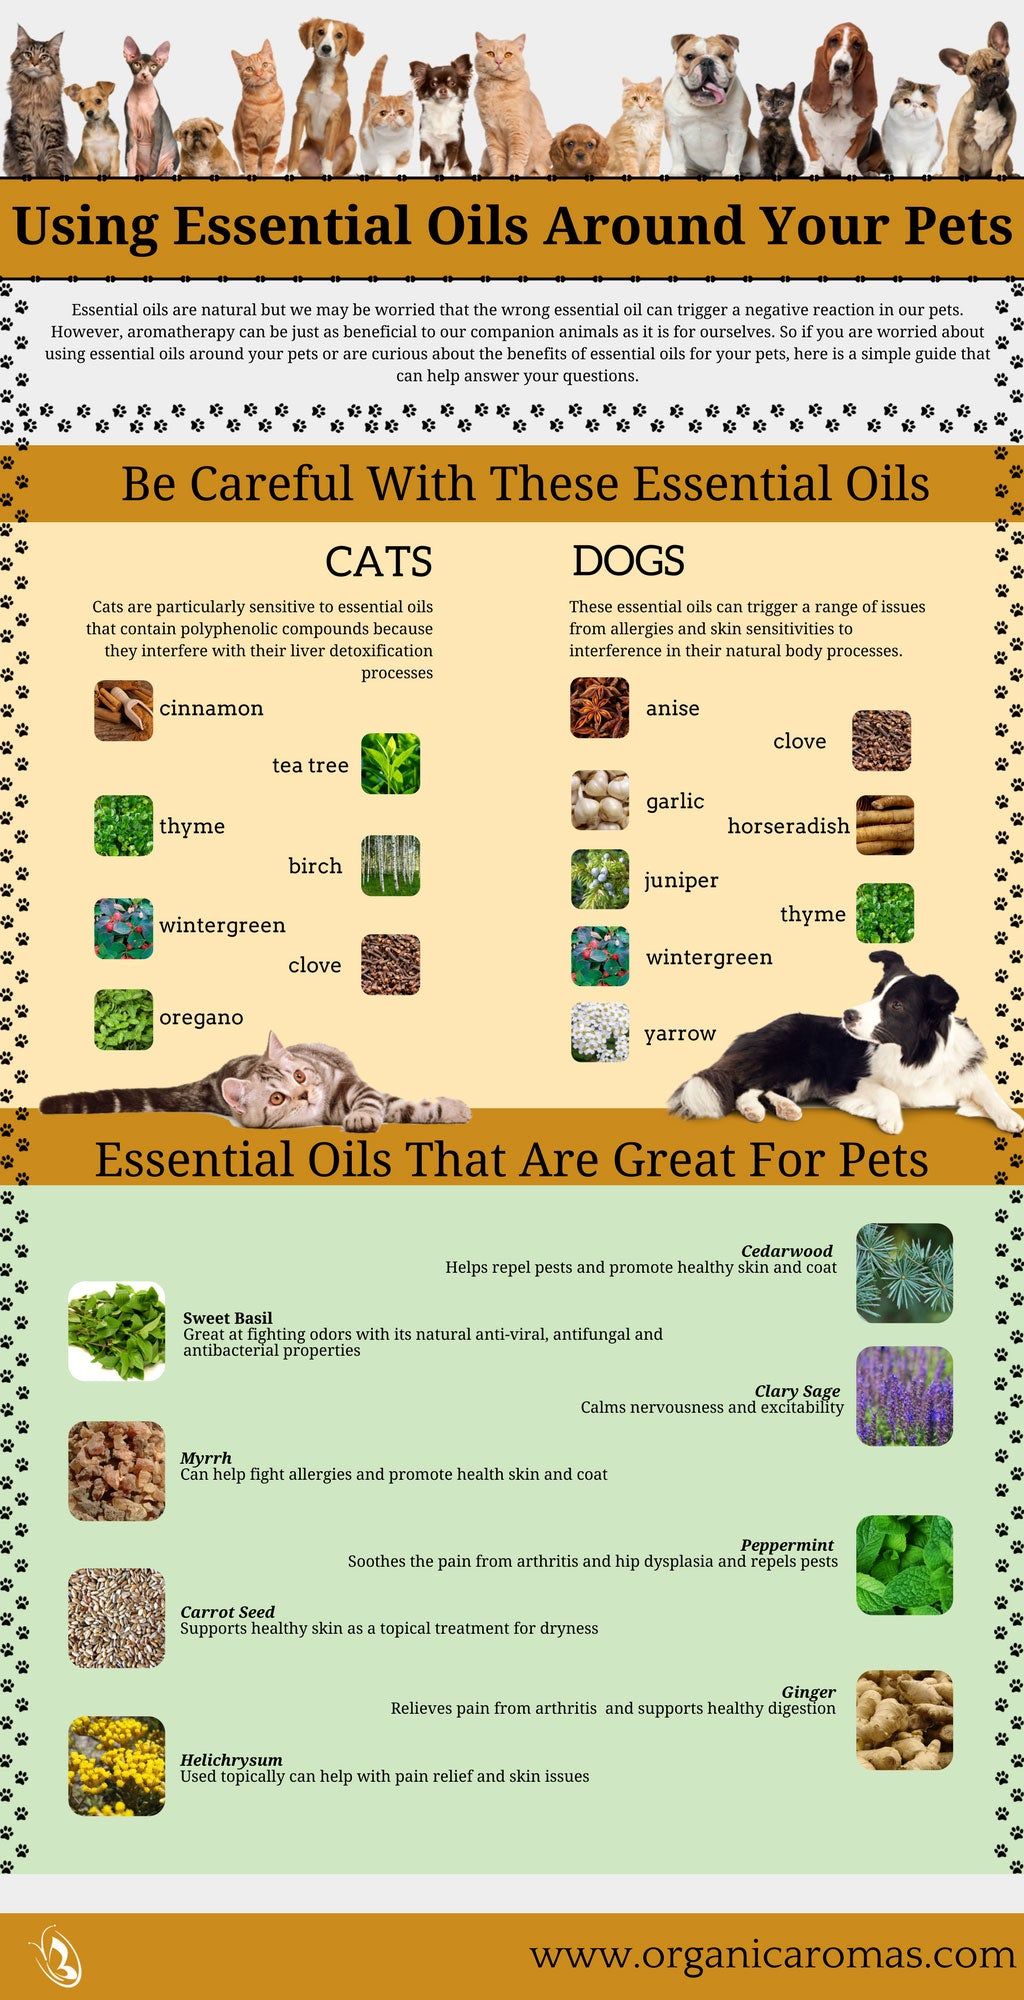 Essential Oils around Your Pets Info-graphic